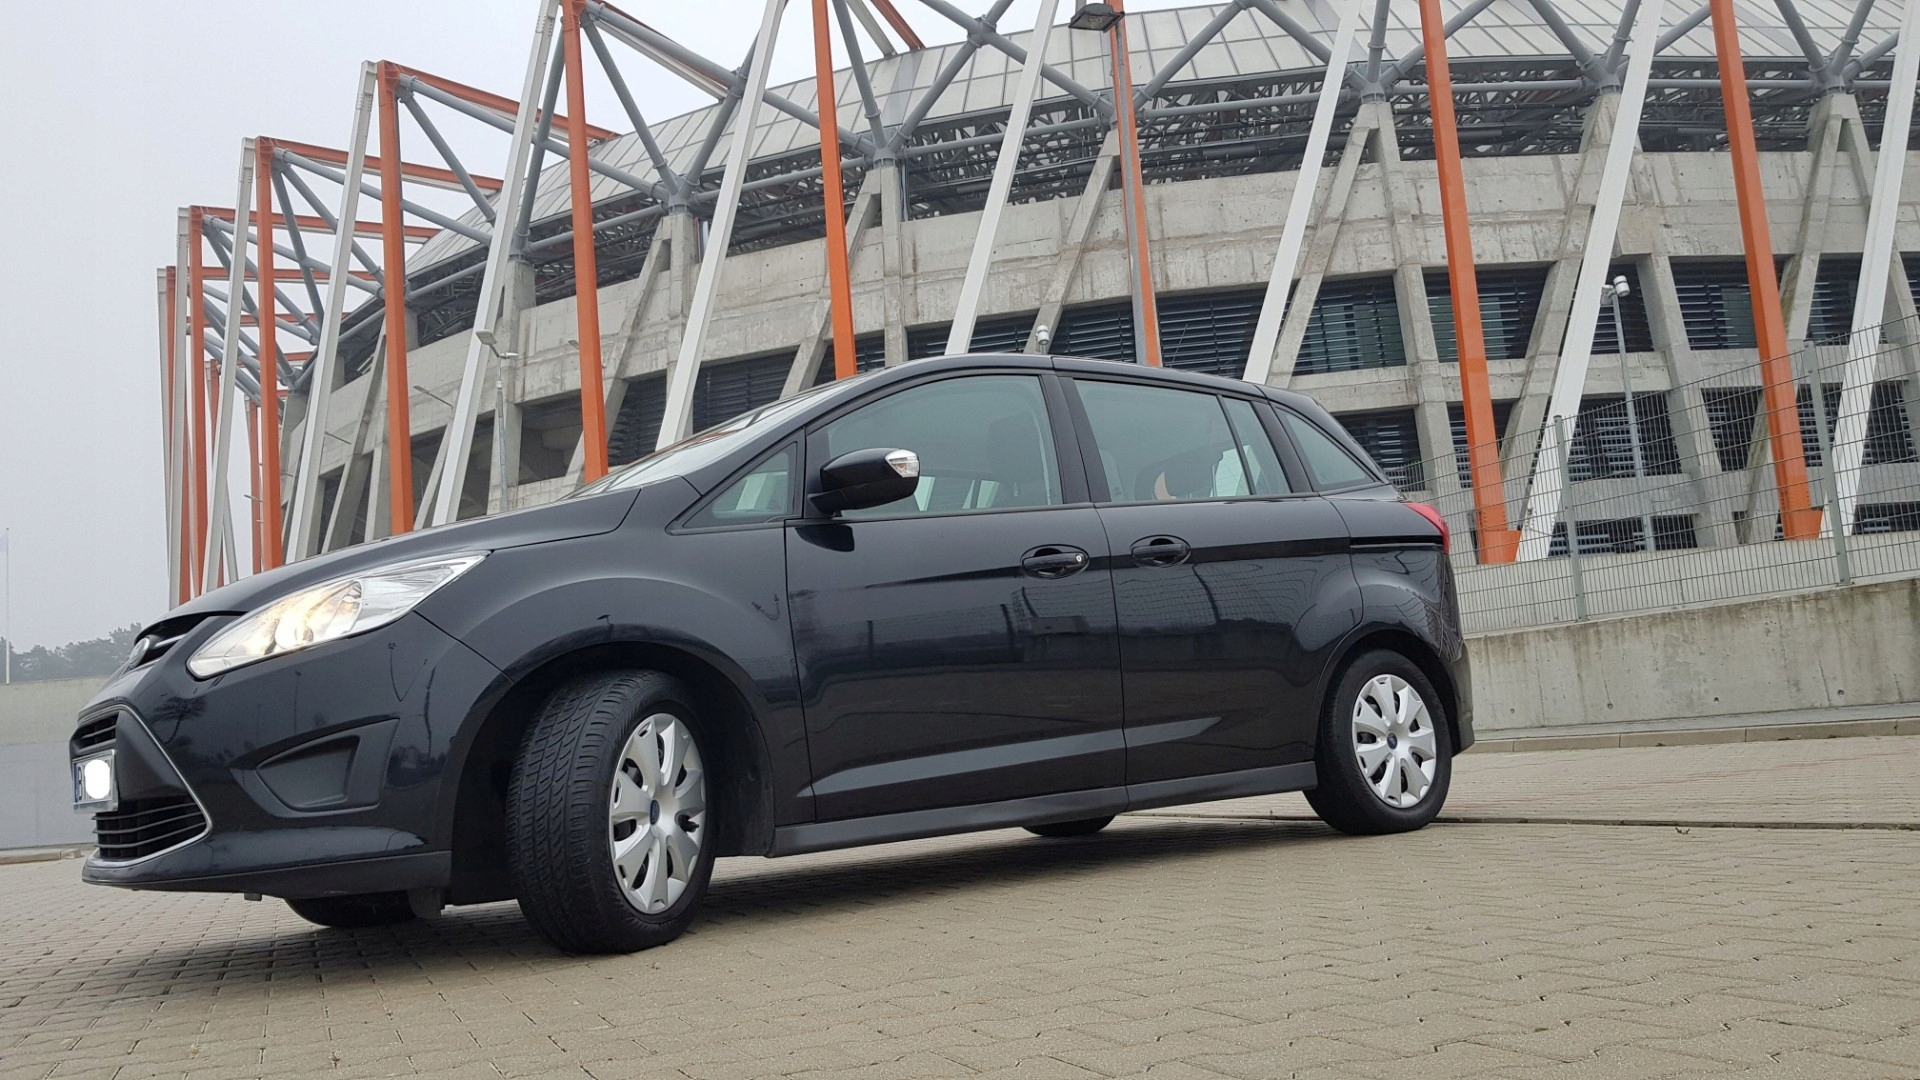 Ford Grand C-MAX 1.6 Bezwypadkowy